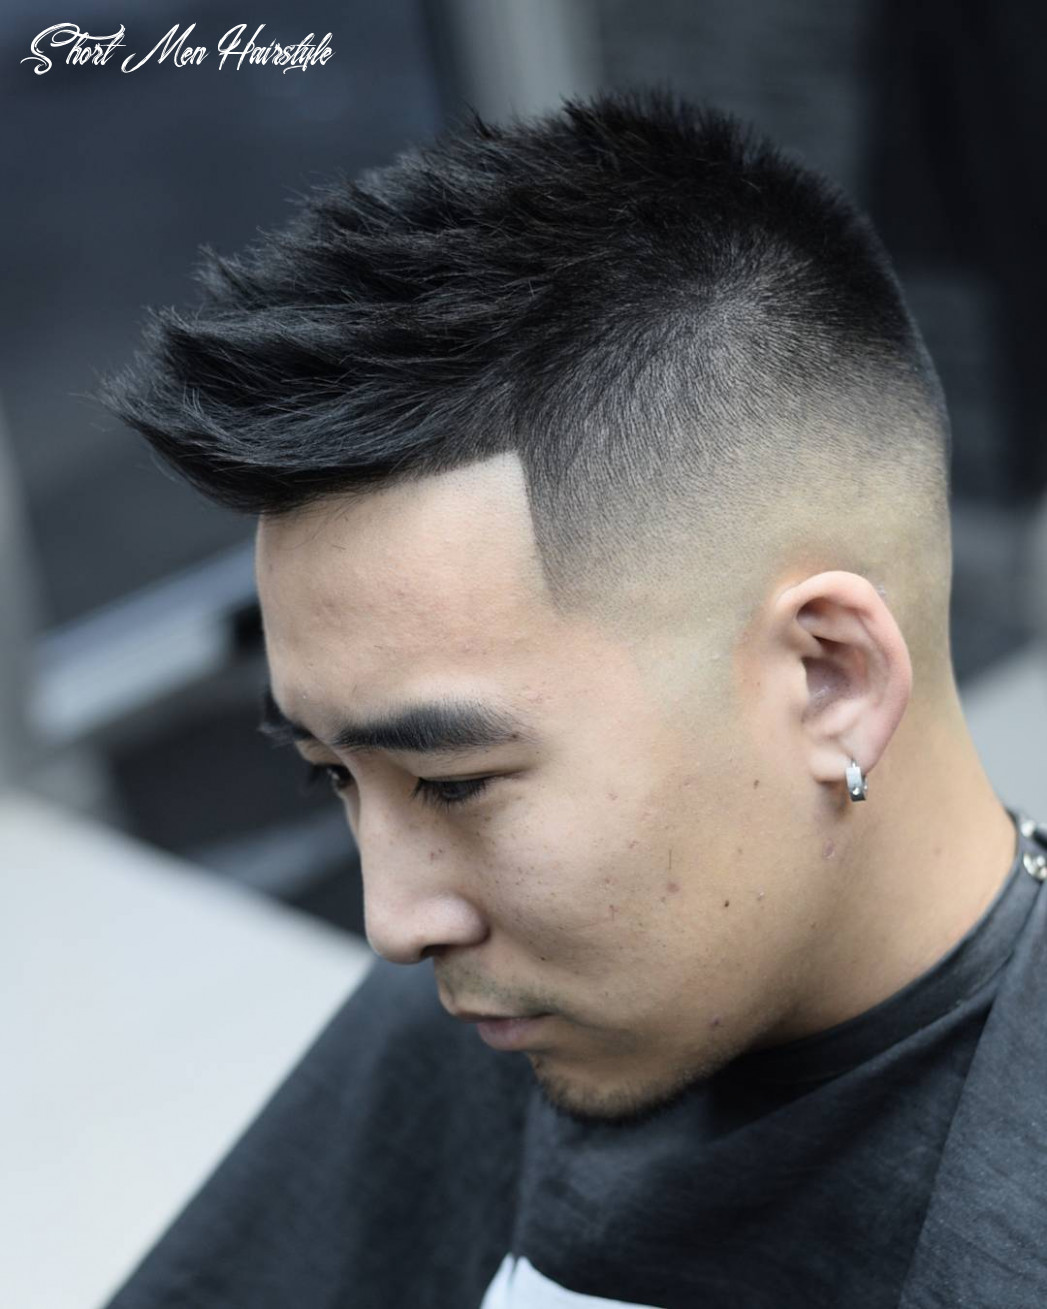 11 Asian Men Hairstyles- Style Up with the Avid Variety of ...